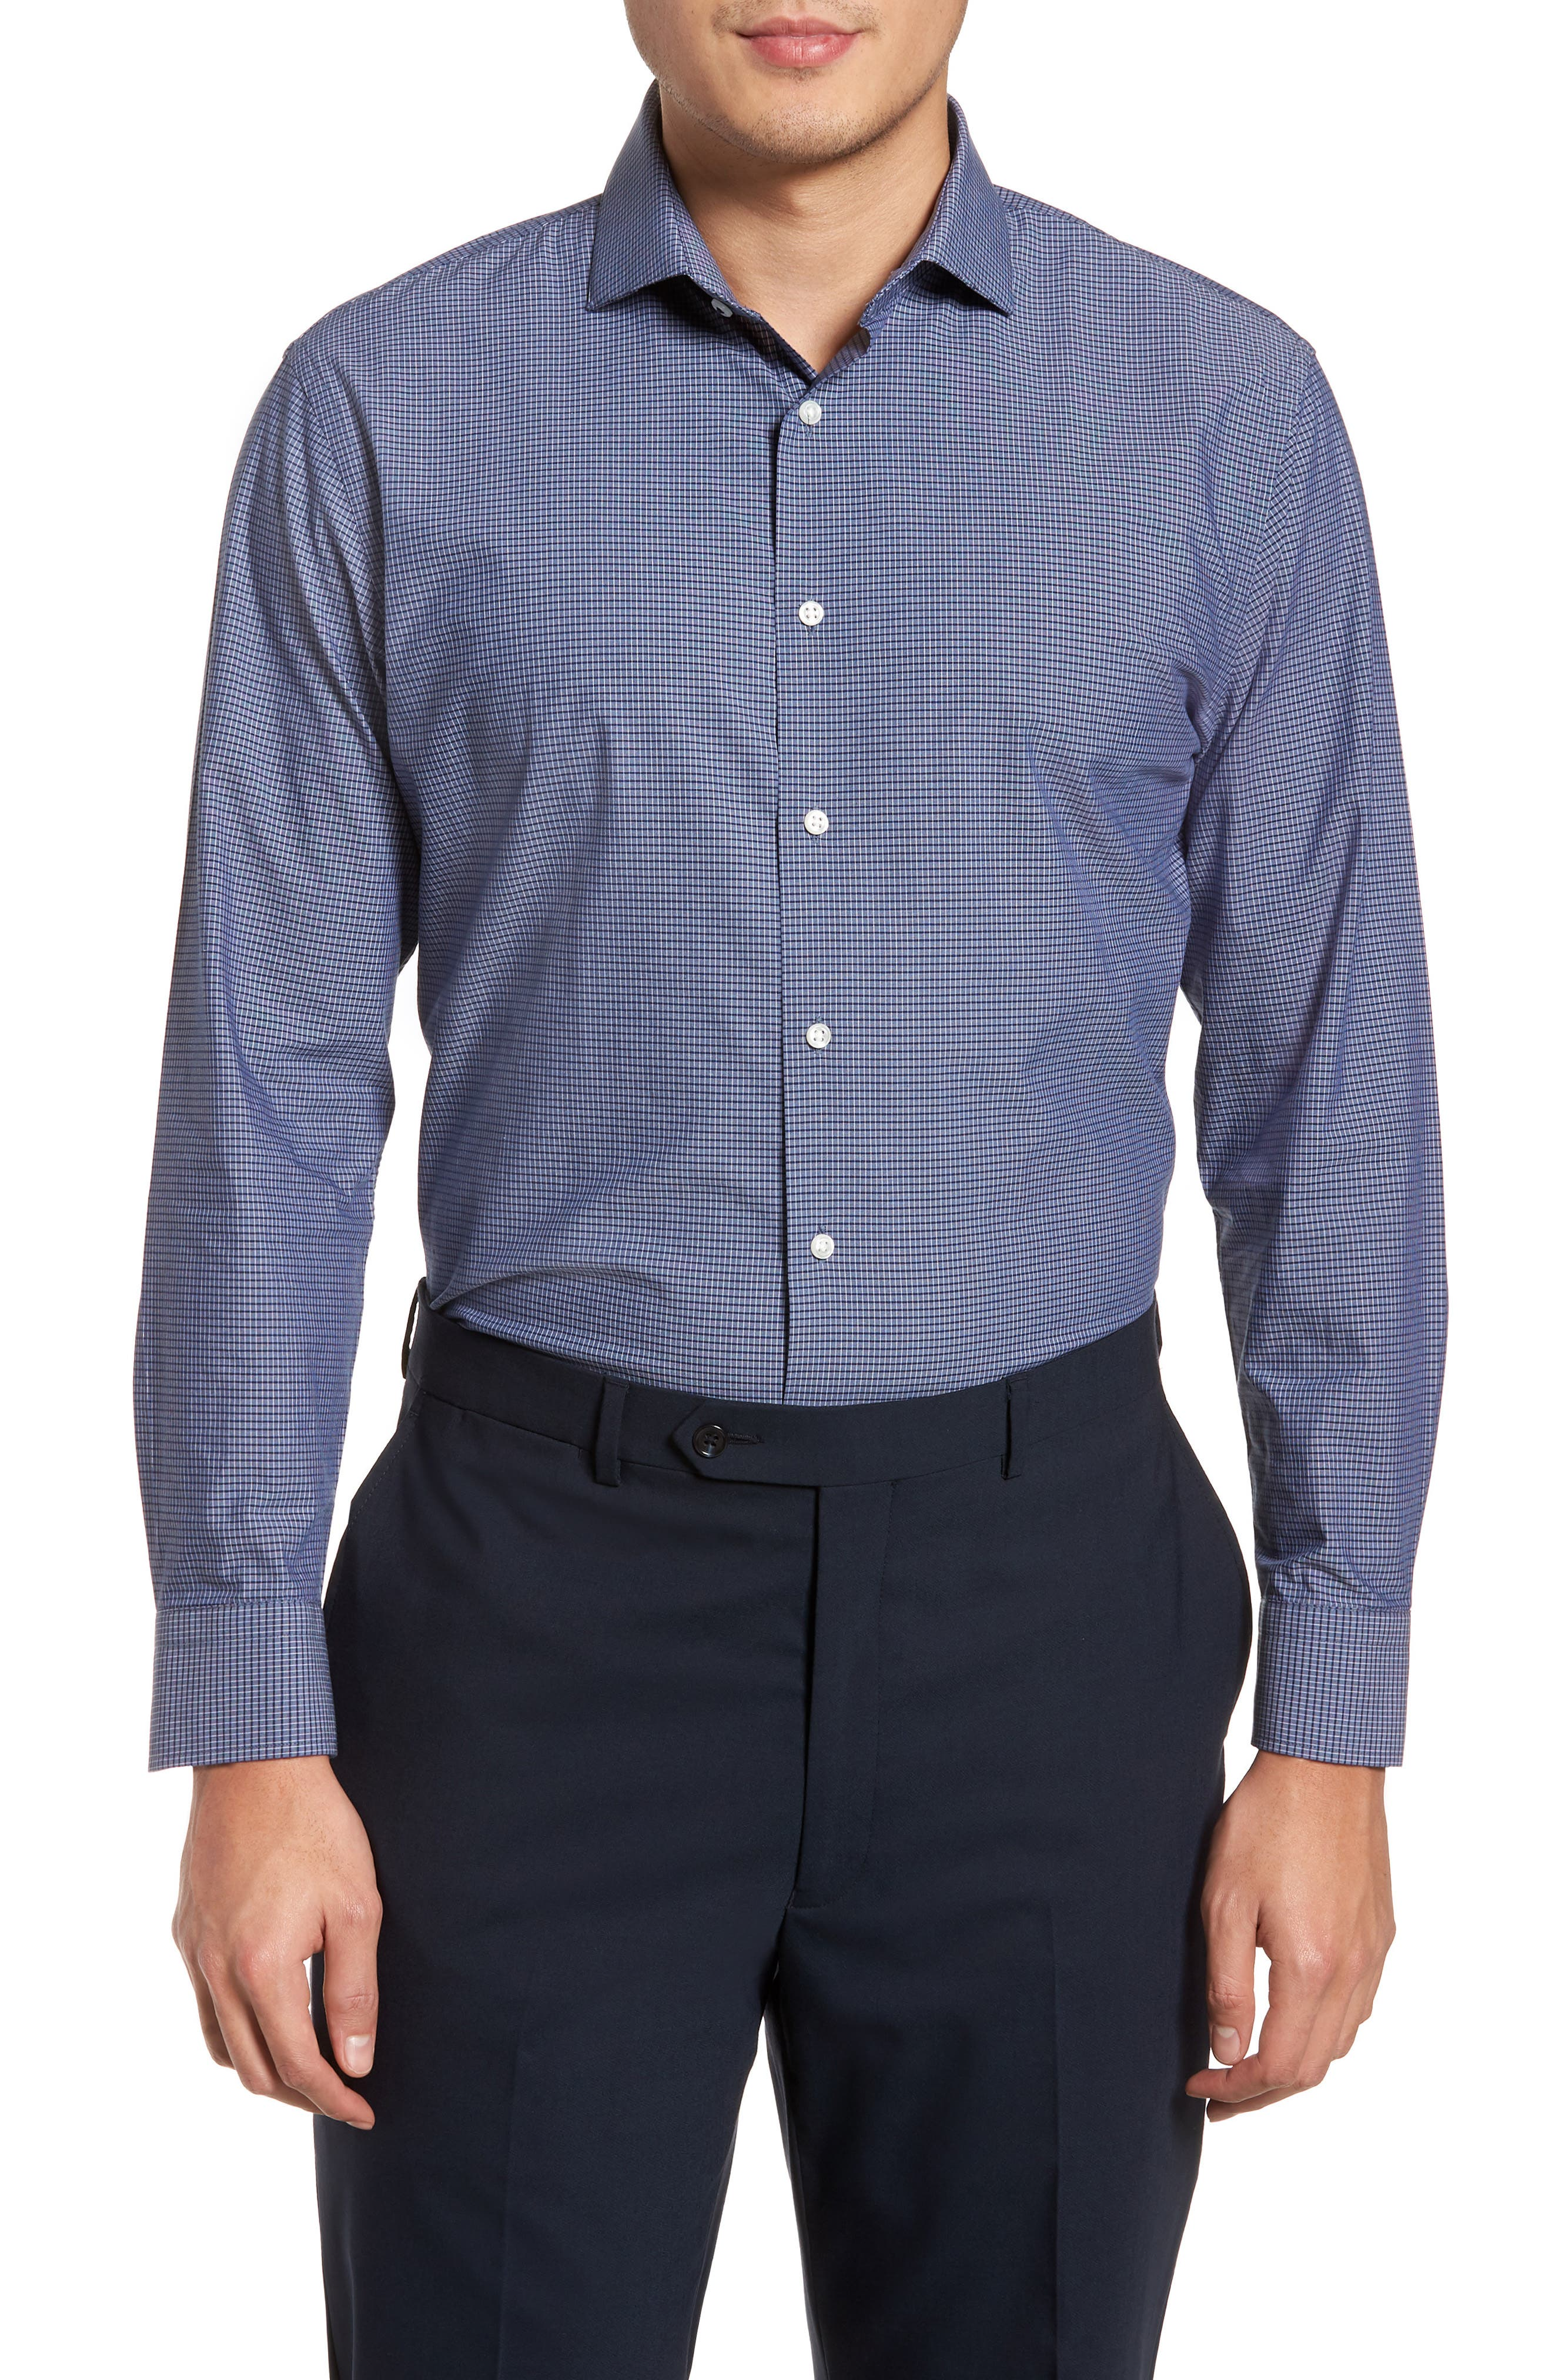 Main Image - Nordstrom Men's Shop Tech-Smart Trim Fit Stretch Check Dress Shirt